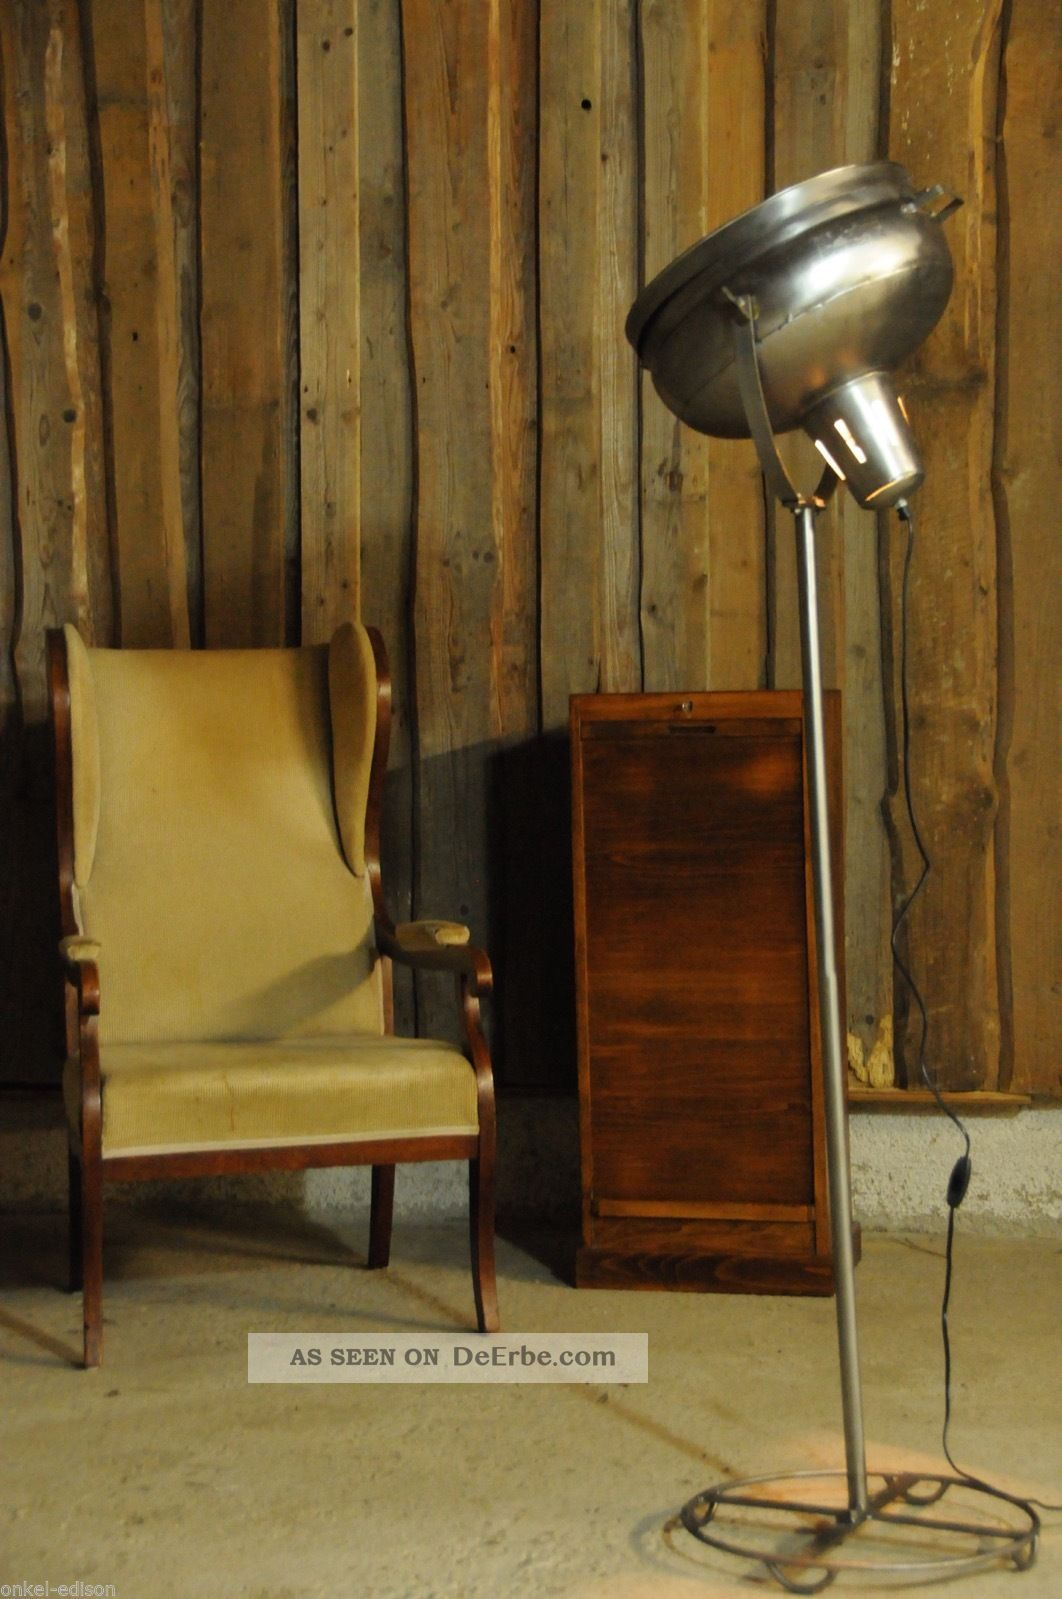 vintage scheinwerfer stehlampe retro industriedesign. Black Bedroom Furniture Sets. Home Design Ideas